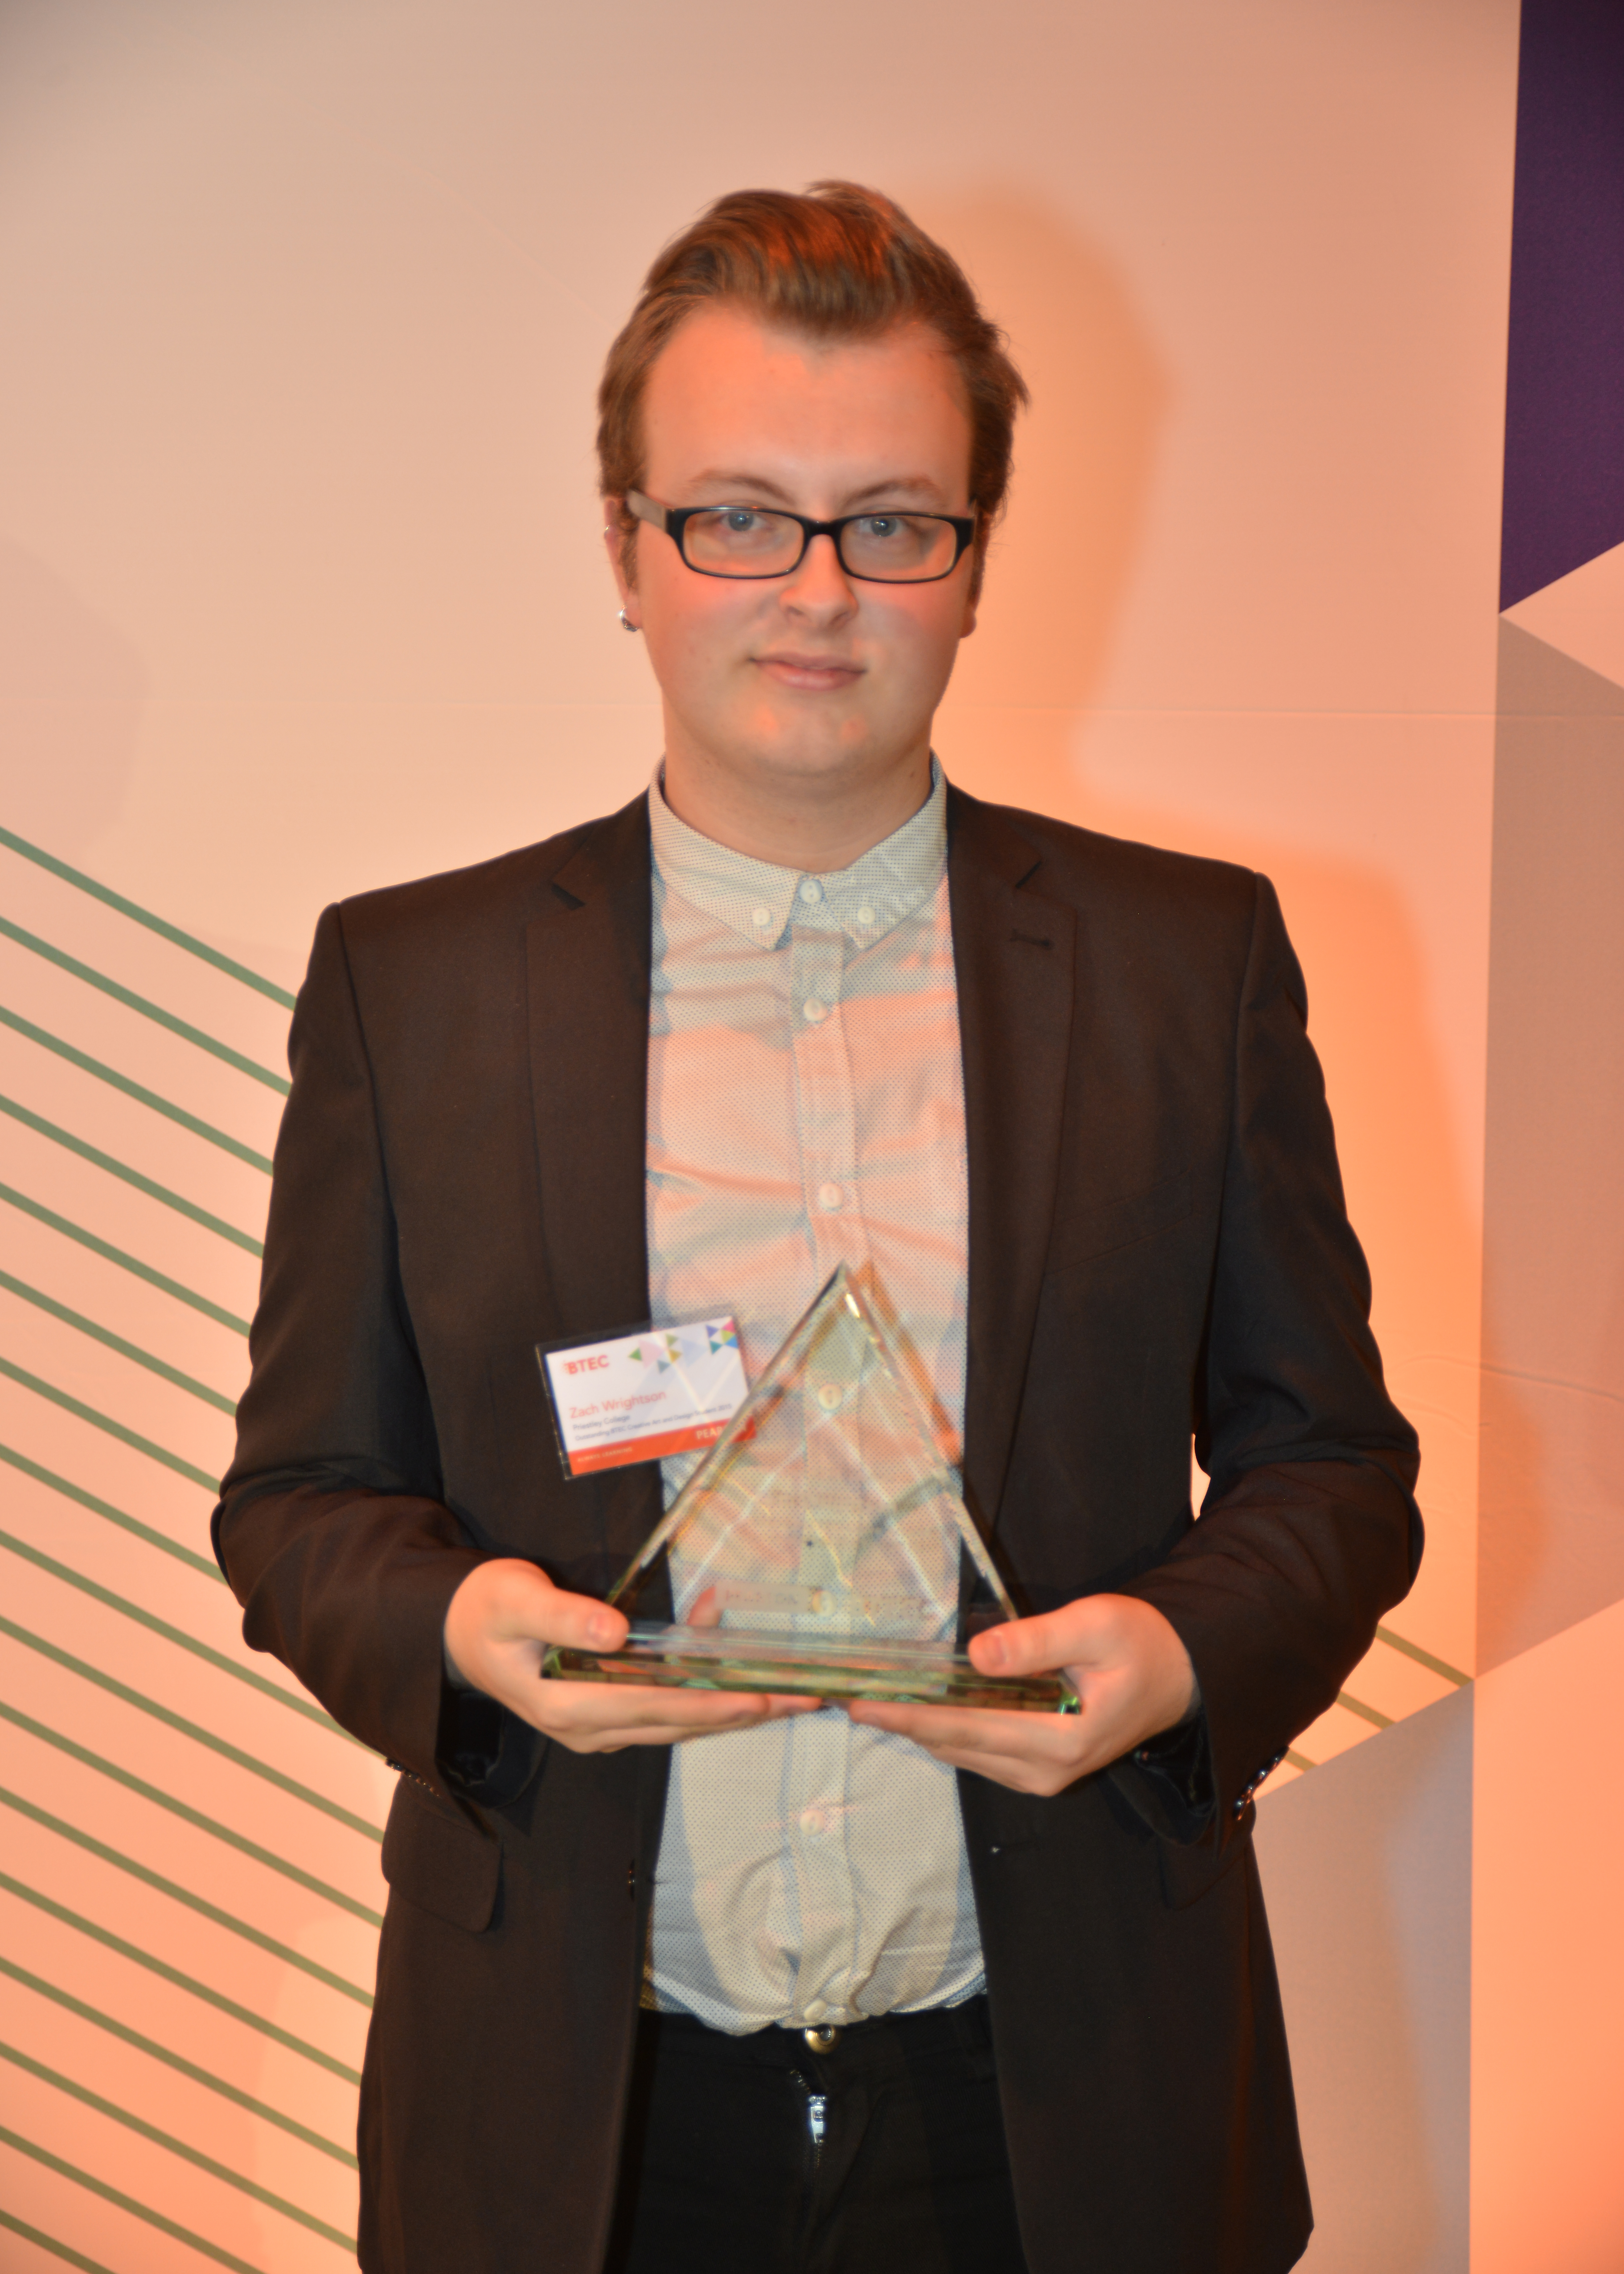 Zach Wrightson, aged 19, Priestley College (Cheshire)